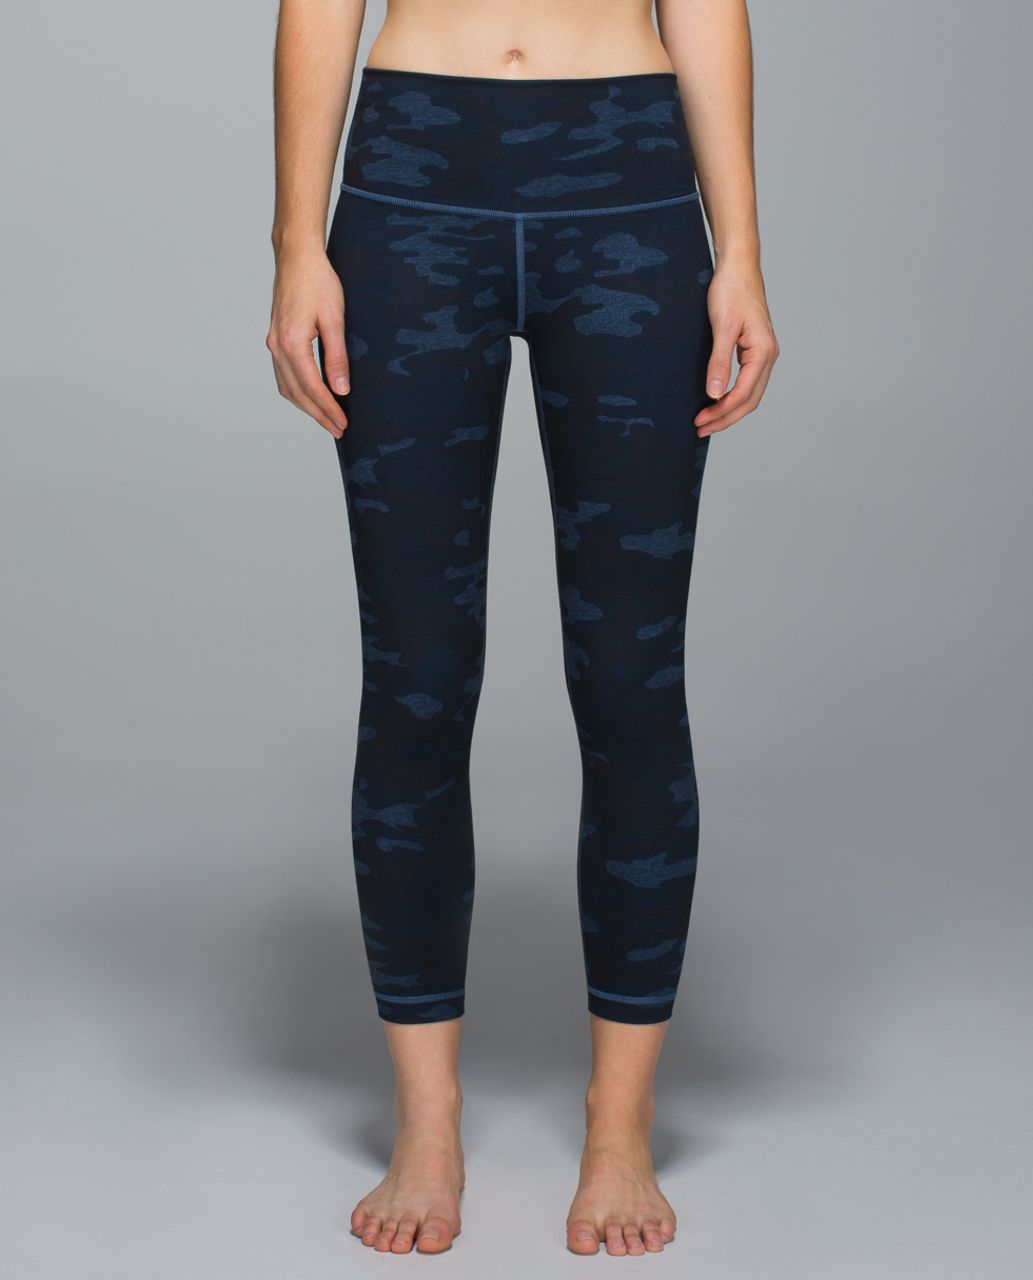 Lululemon High Times Pant *Full-On Luon - Heathered Texture Lotus Camo Oil Slick Blue